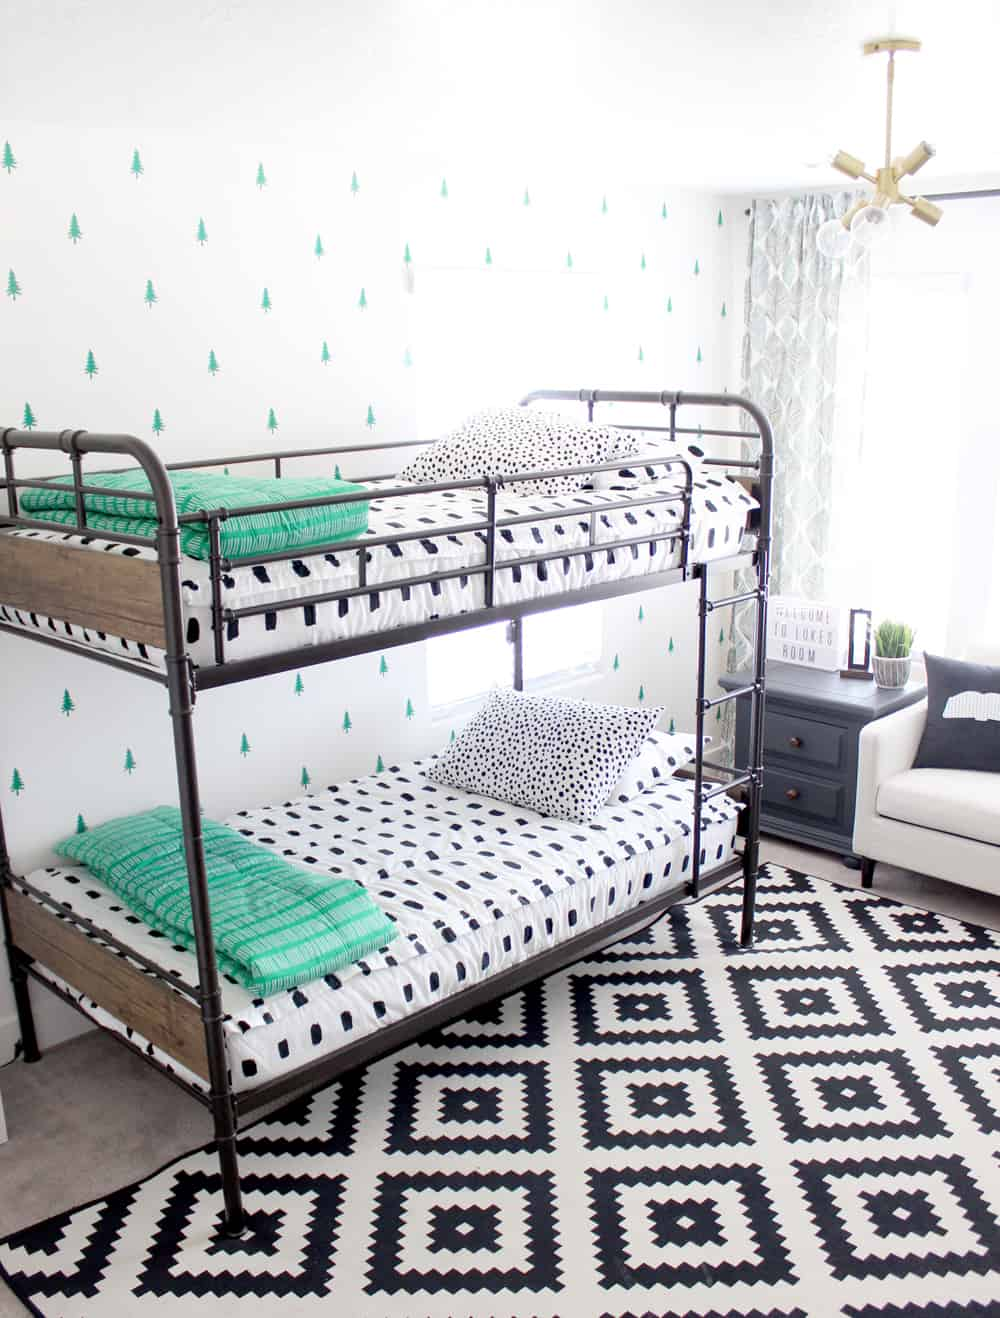 Super cute boy's bedroom set up!